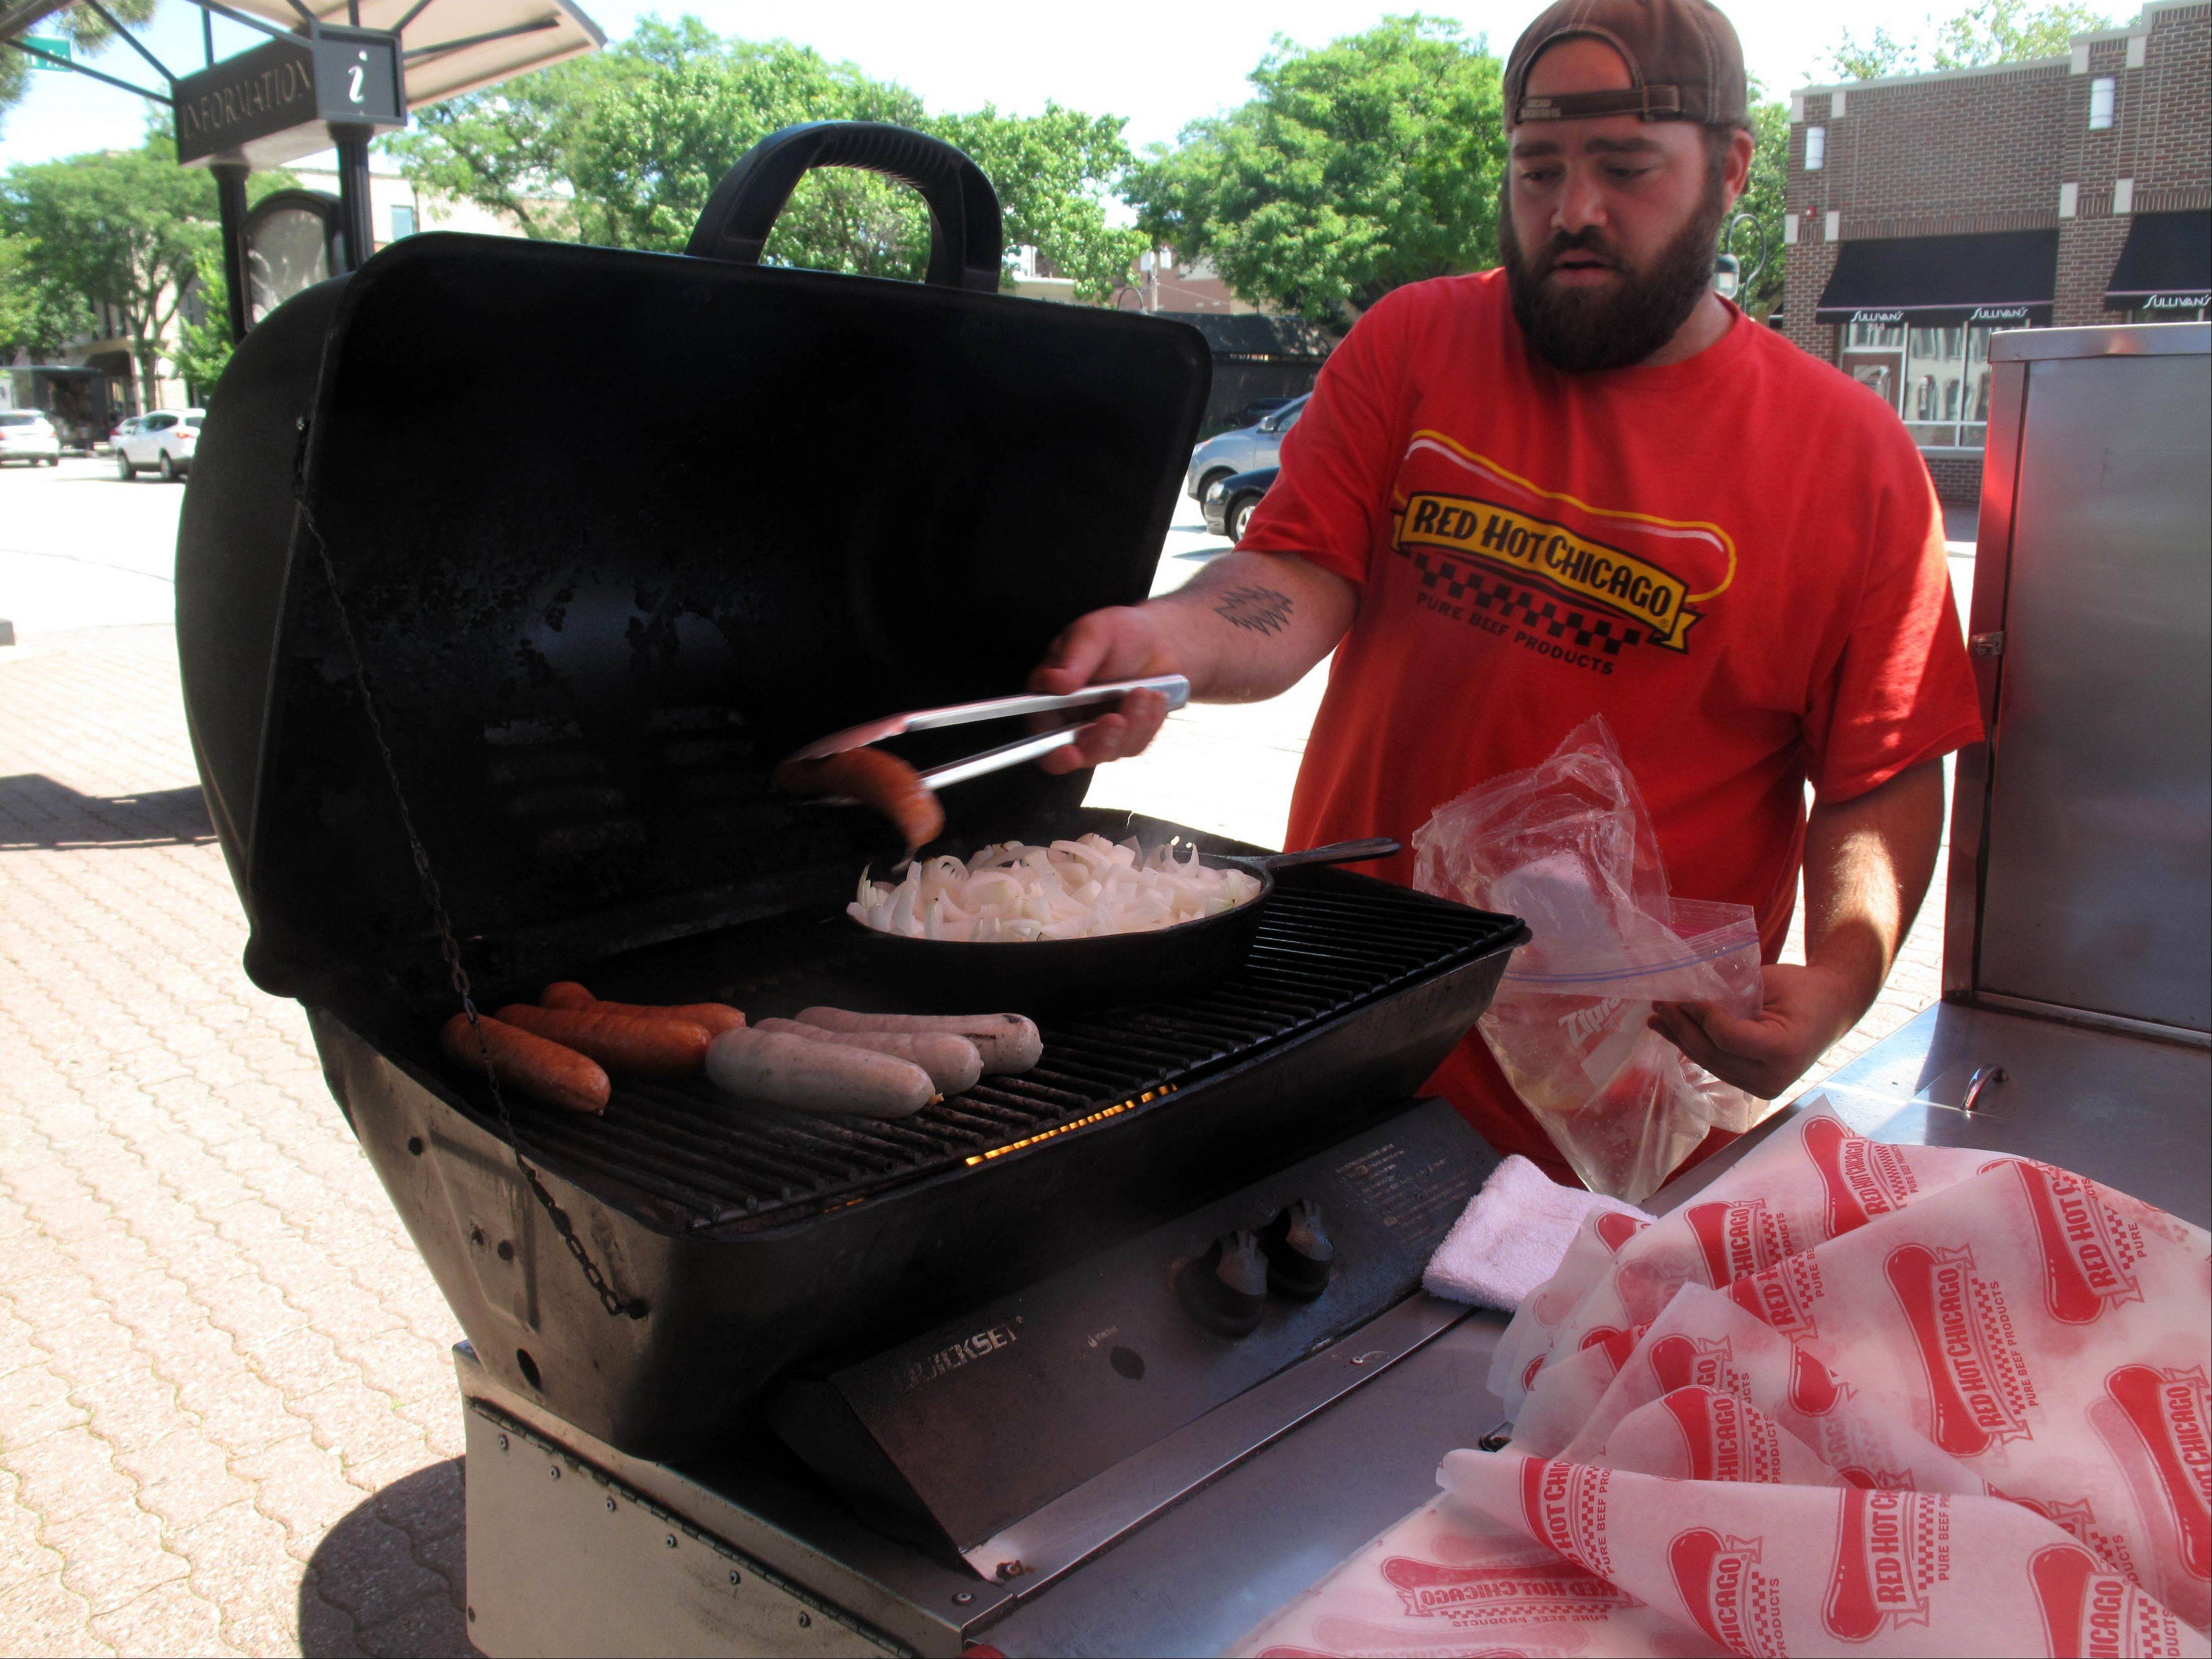 Joe Hornbaker of Joey's Red Hots hopes to continue grilling hot dogs, brats and onions from his food cart in downtown Naperville.